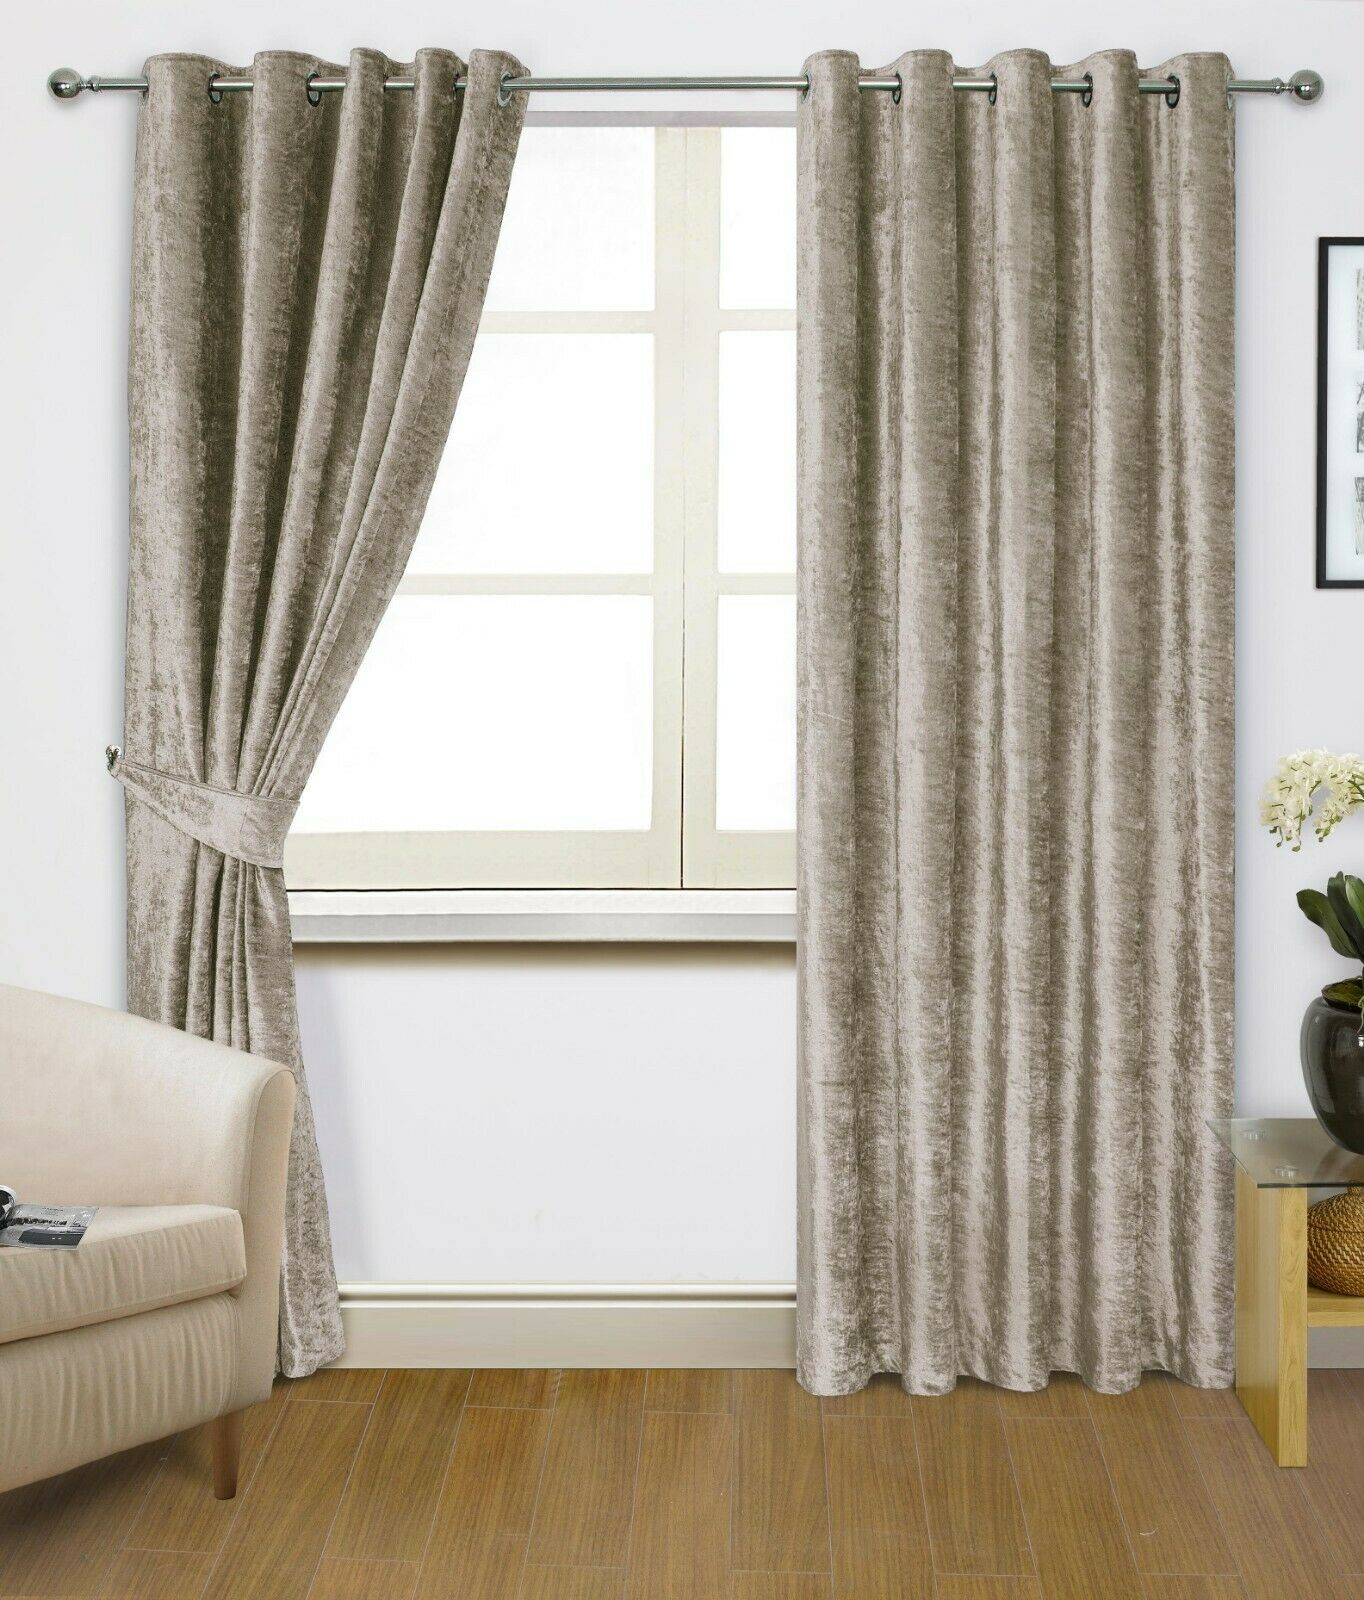 curtains - Crushed Velvet Lined Eyelet Mink Curtains (PAIR) - REDUCED TO CLEAR STOCK